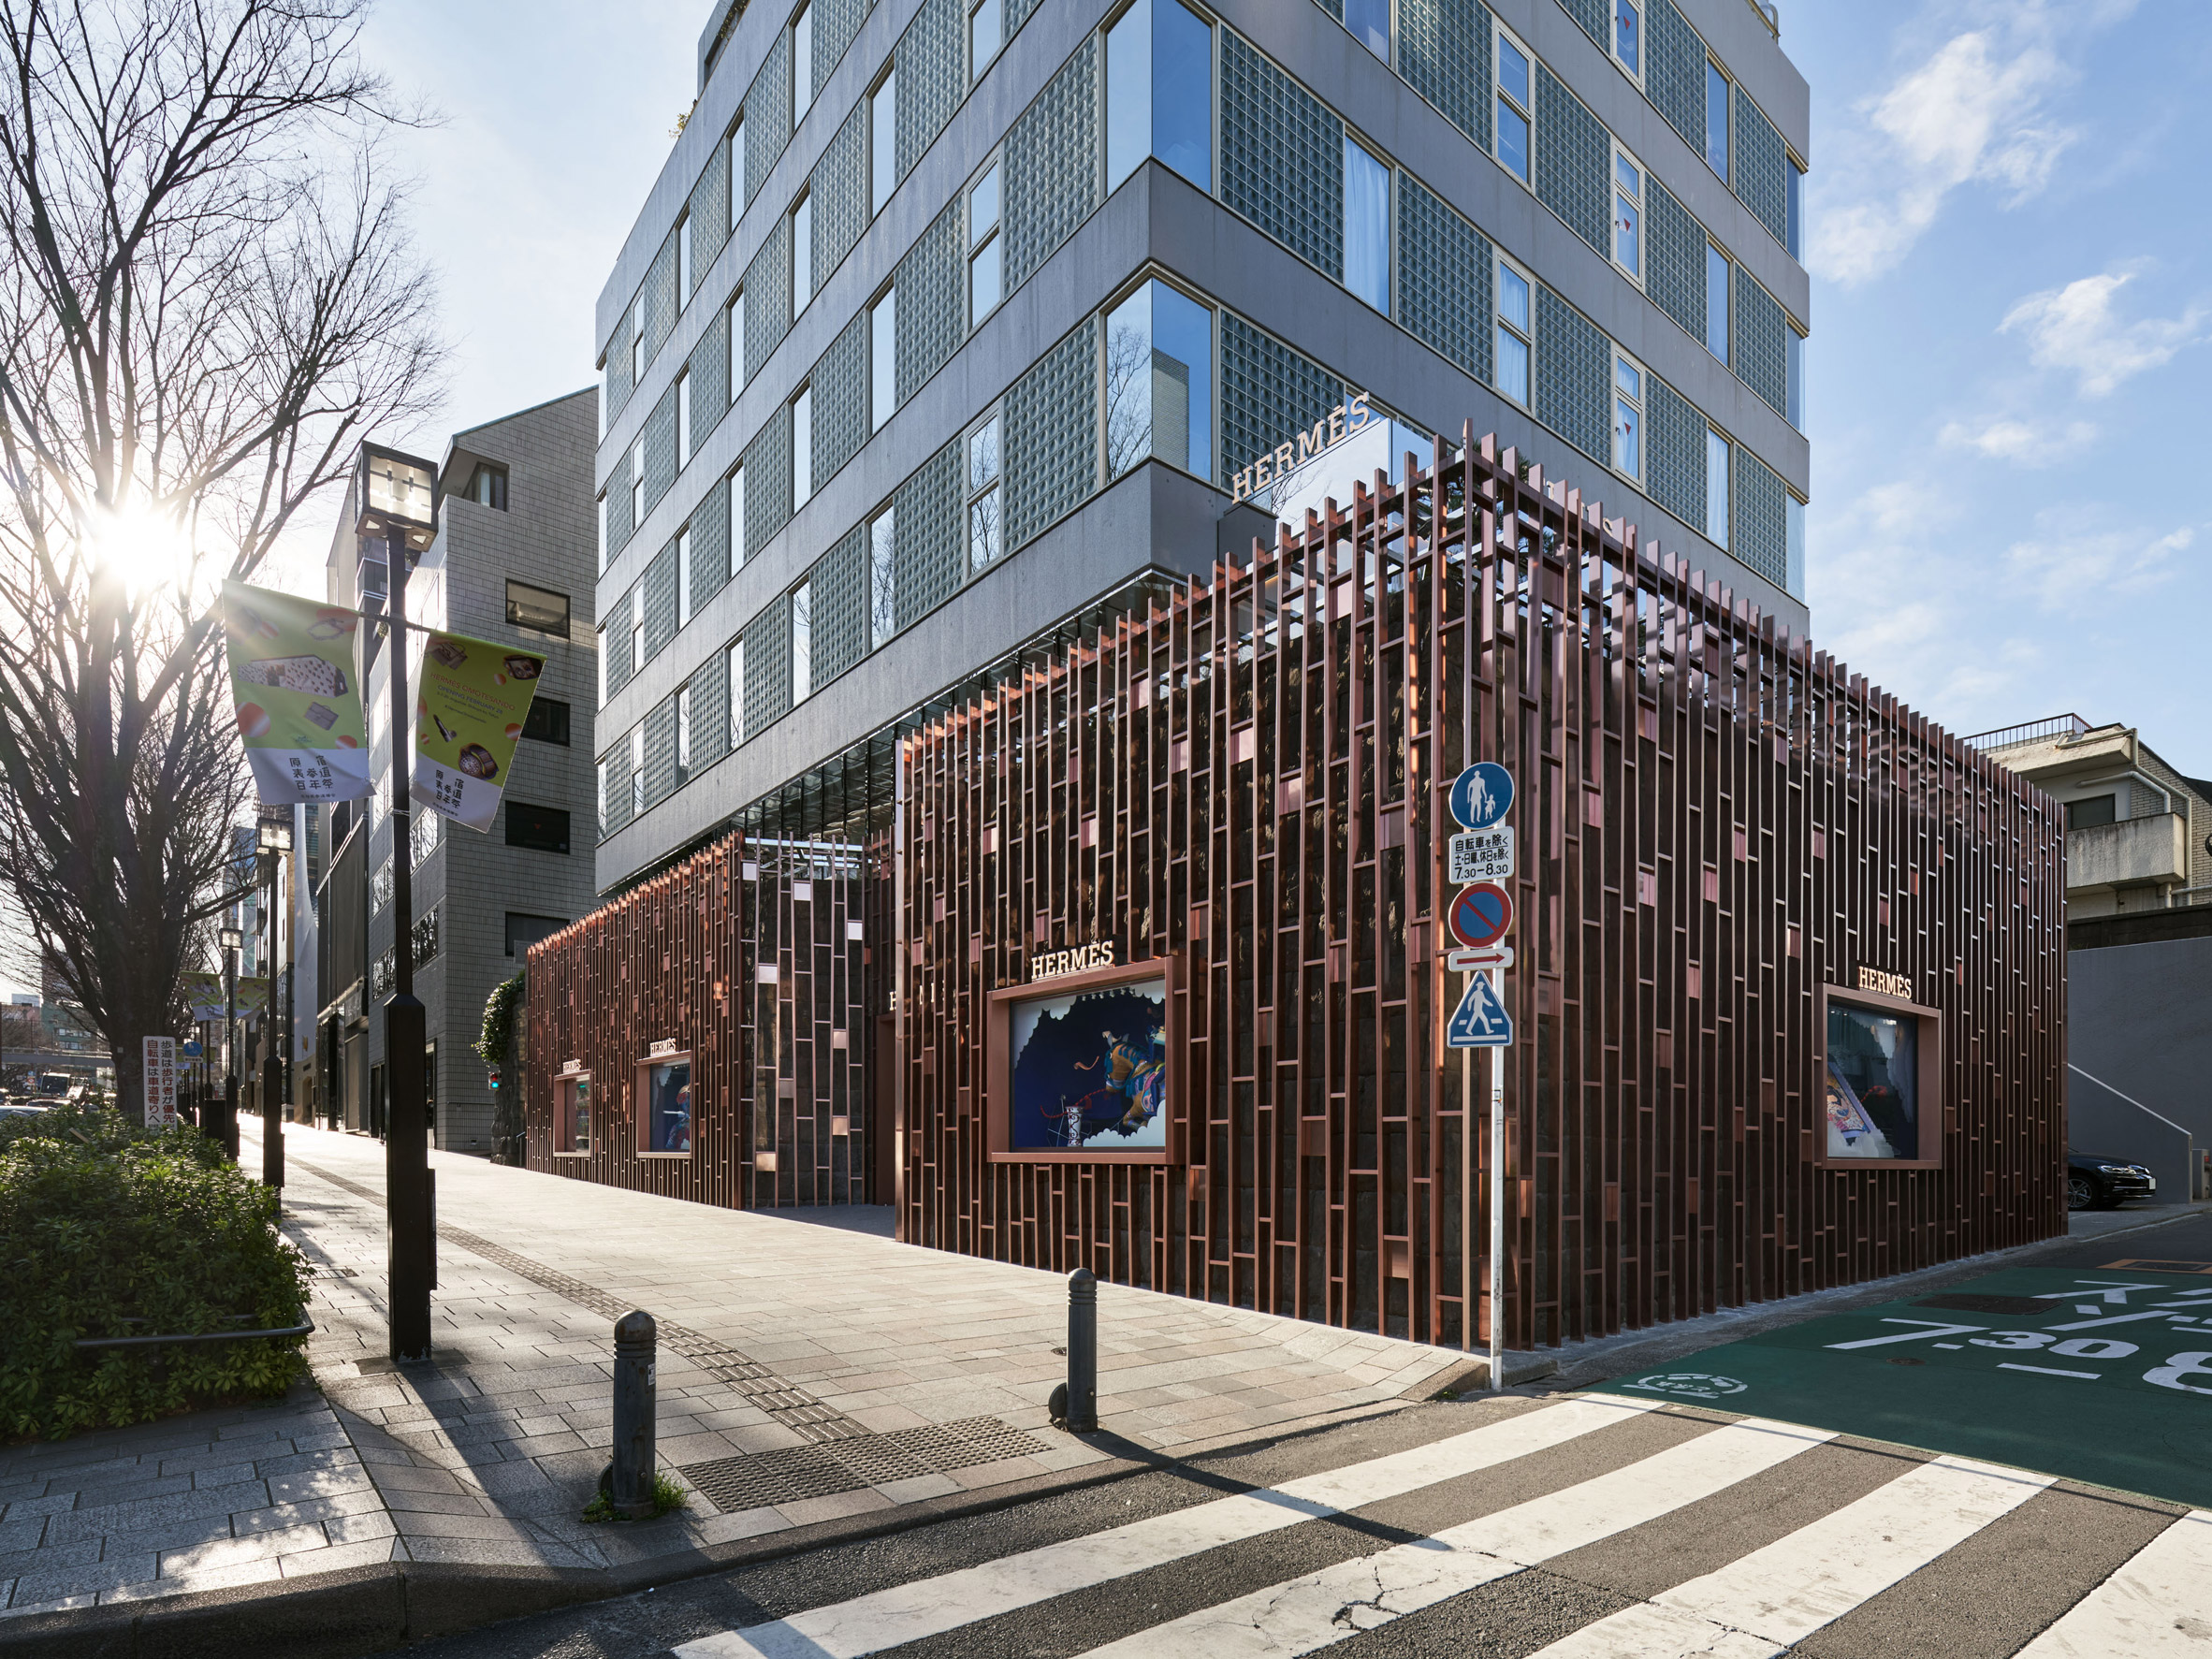 A shop with a gridded steel facade